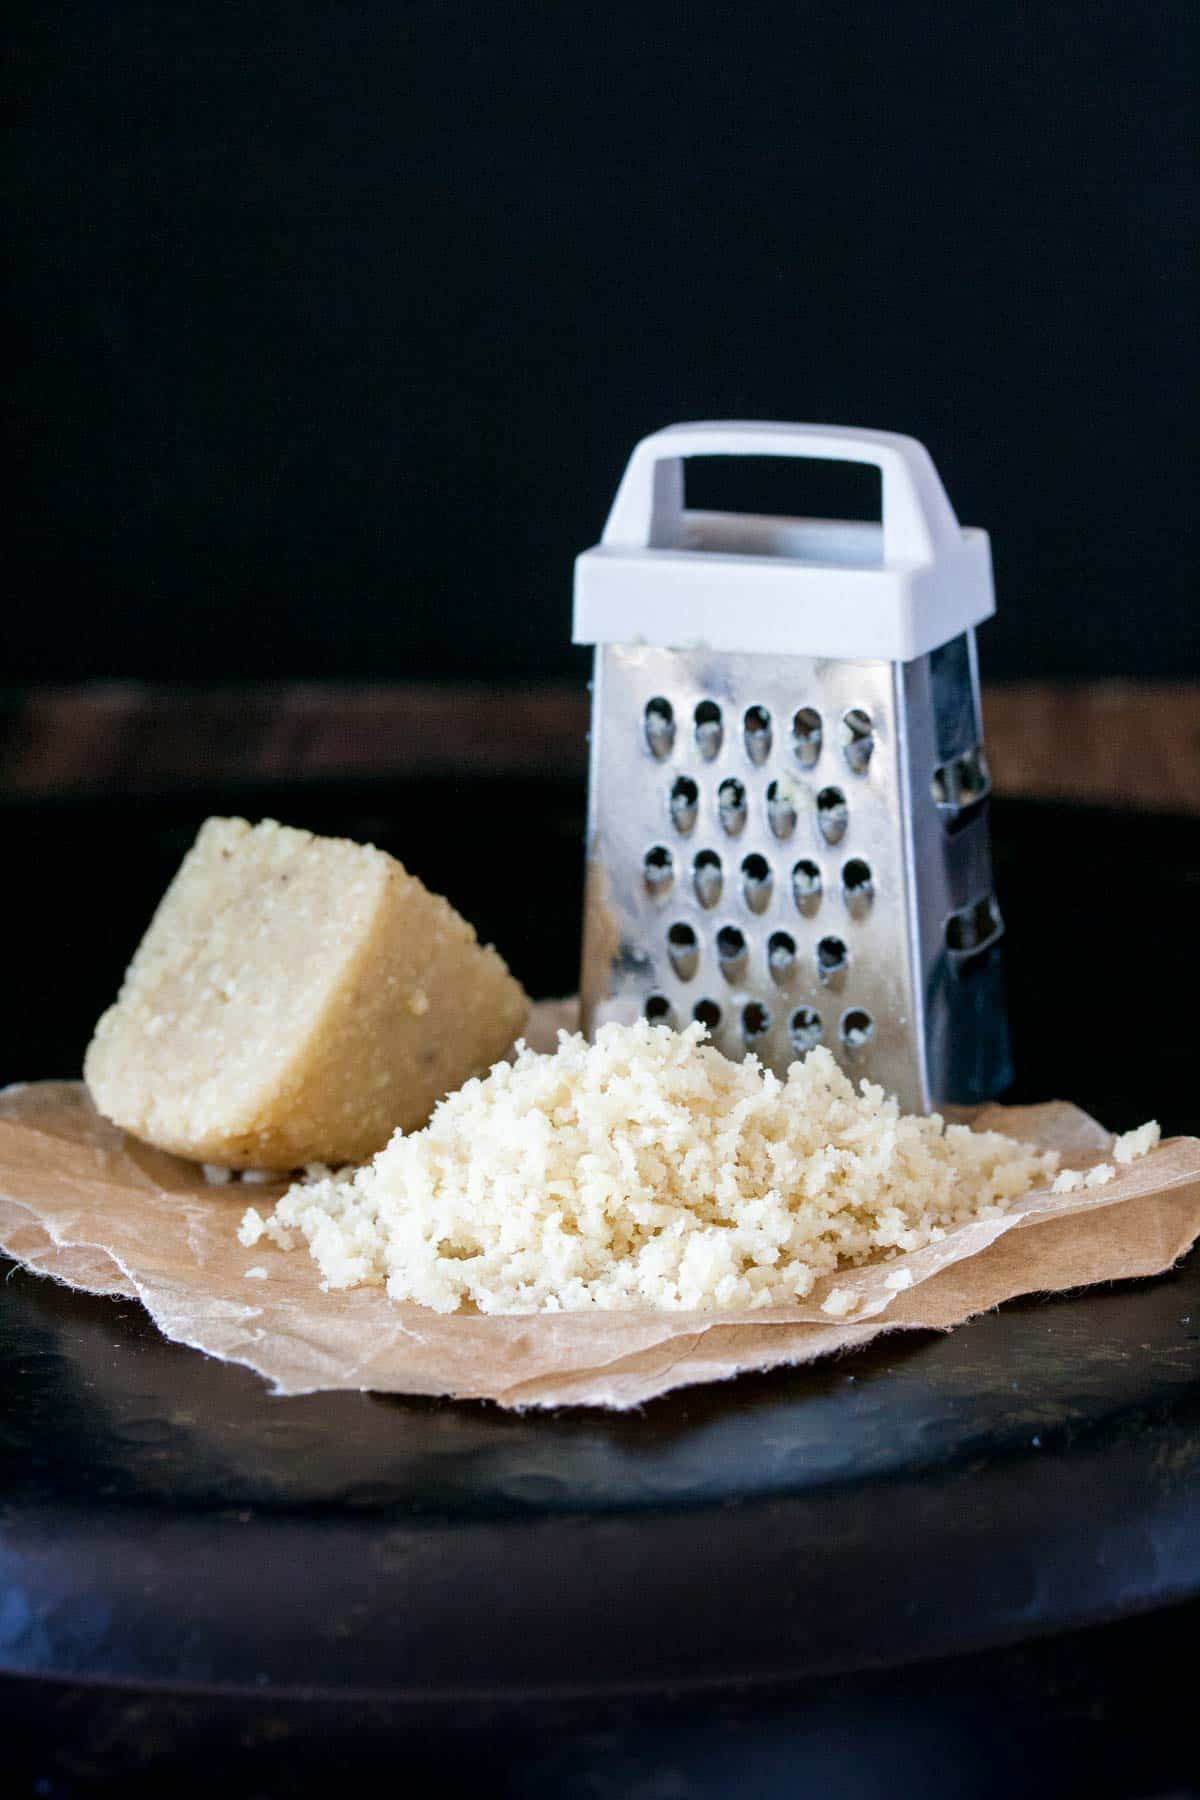 A pile of grated Parmesan next to a grater and a piece of the cheese block